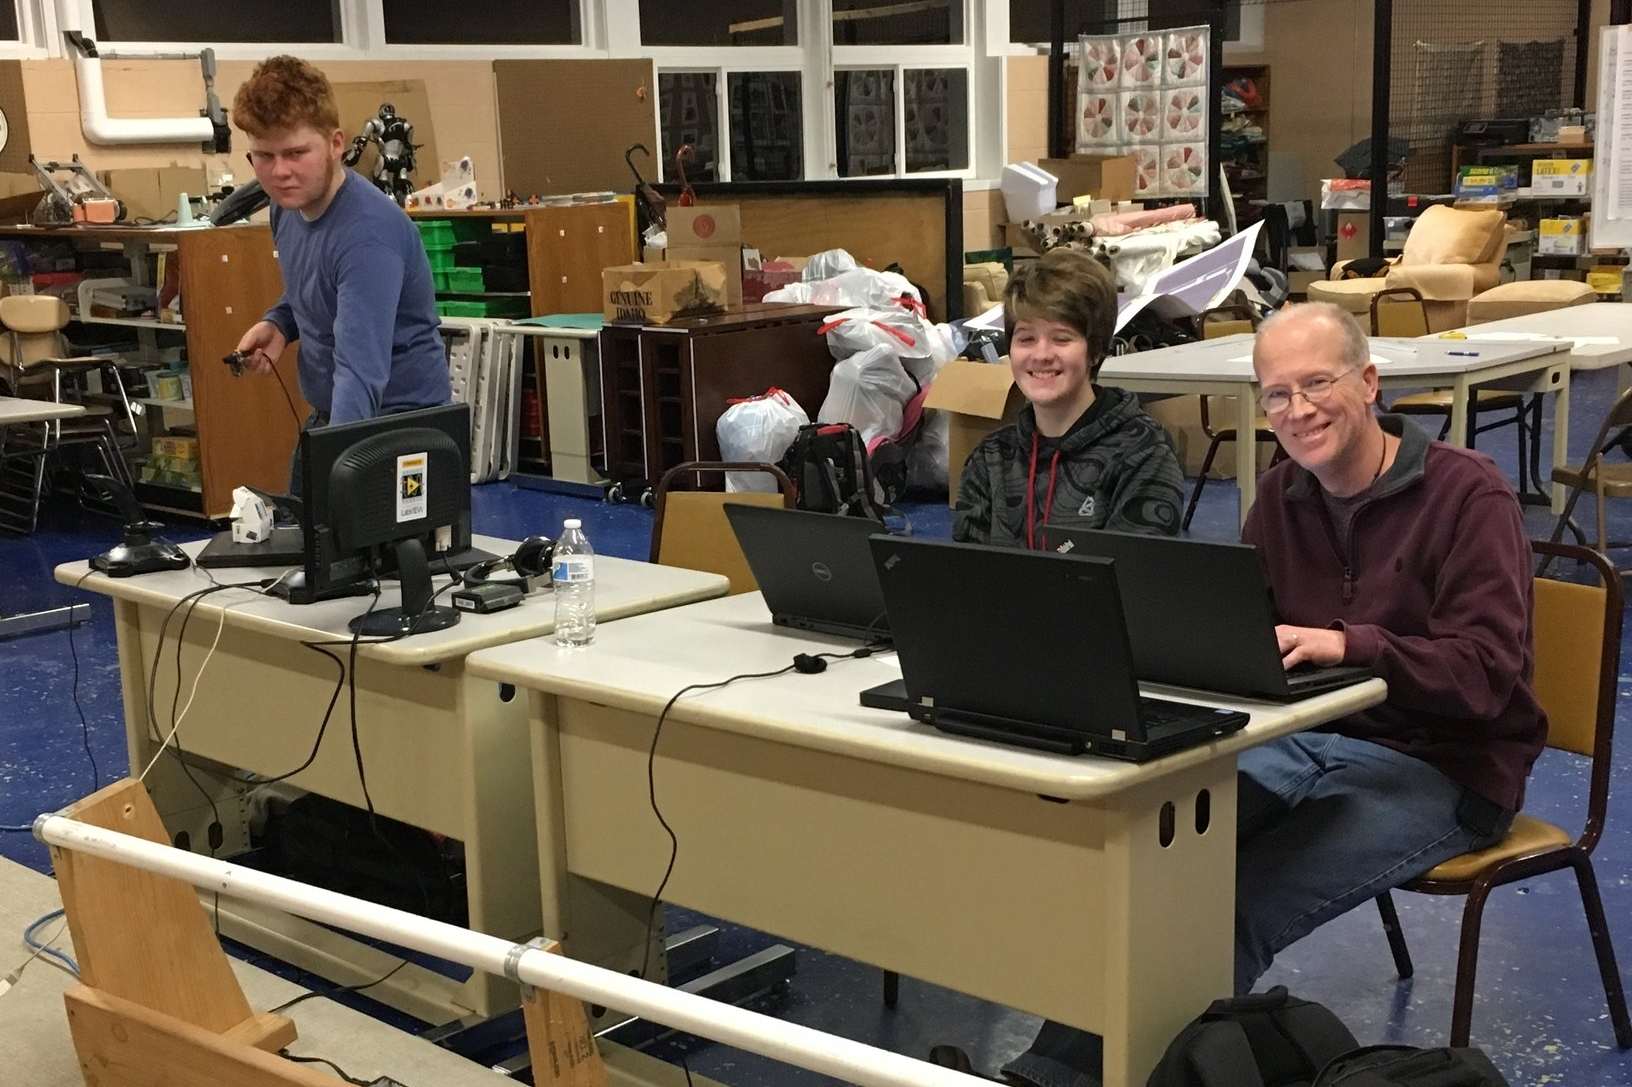 The programming team consists of two veterans working with the programming mentor. This year we have a lot of lines of code to write: approximately 4000-5000 lines.